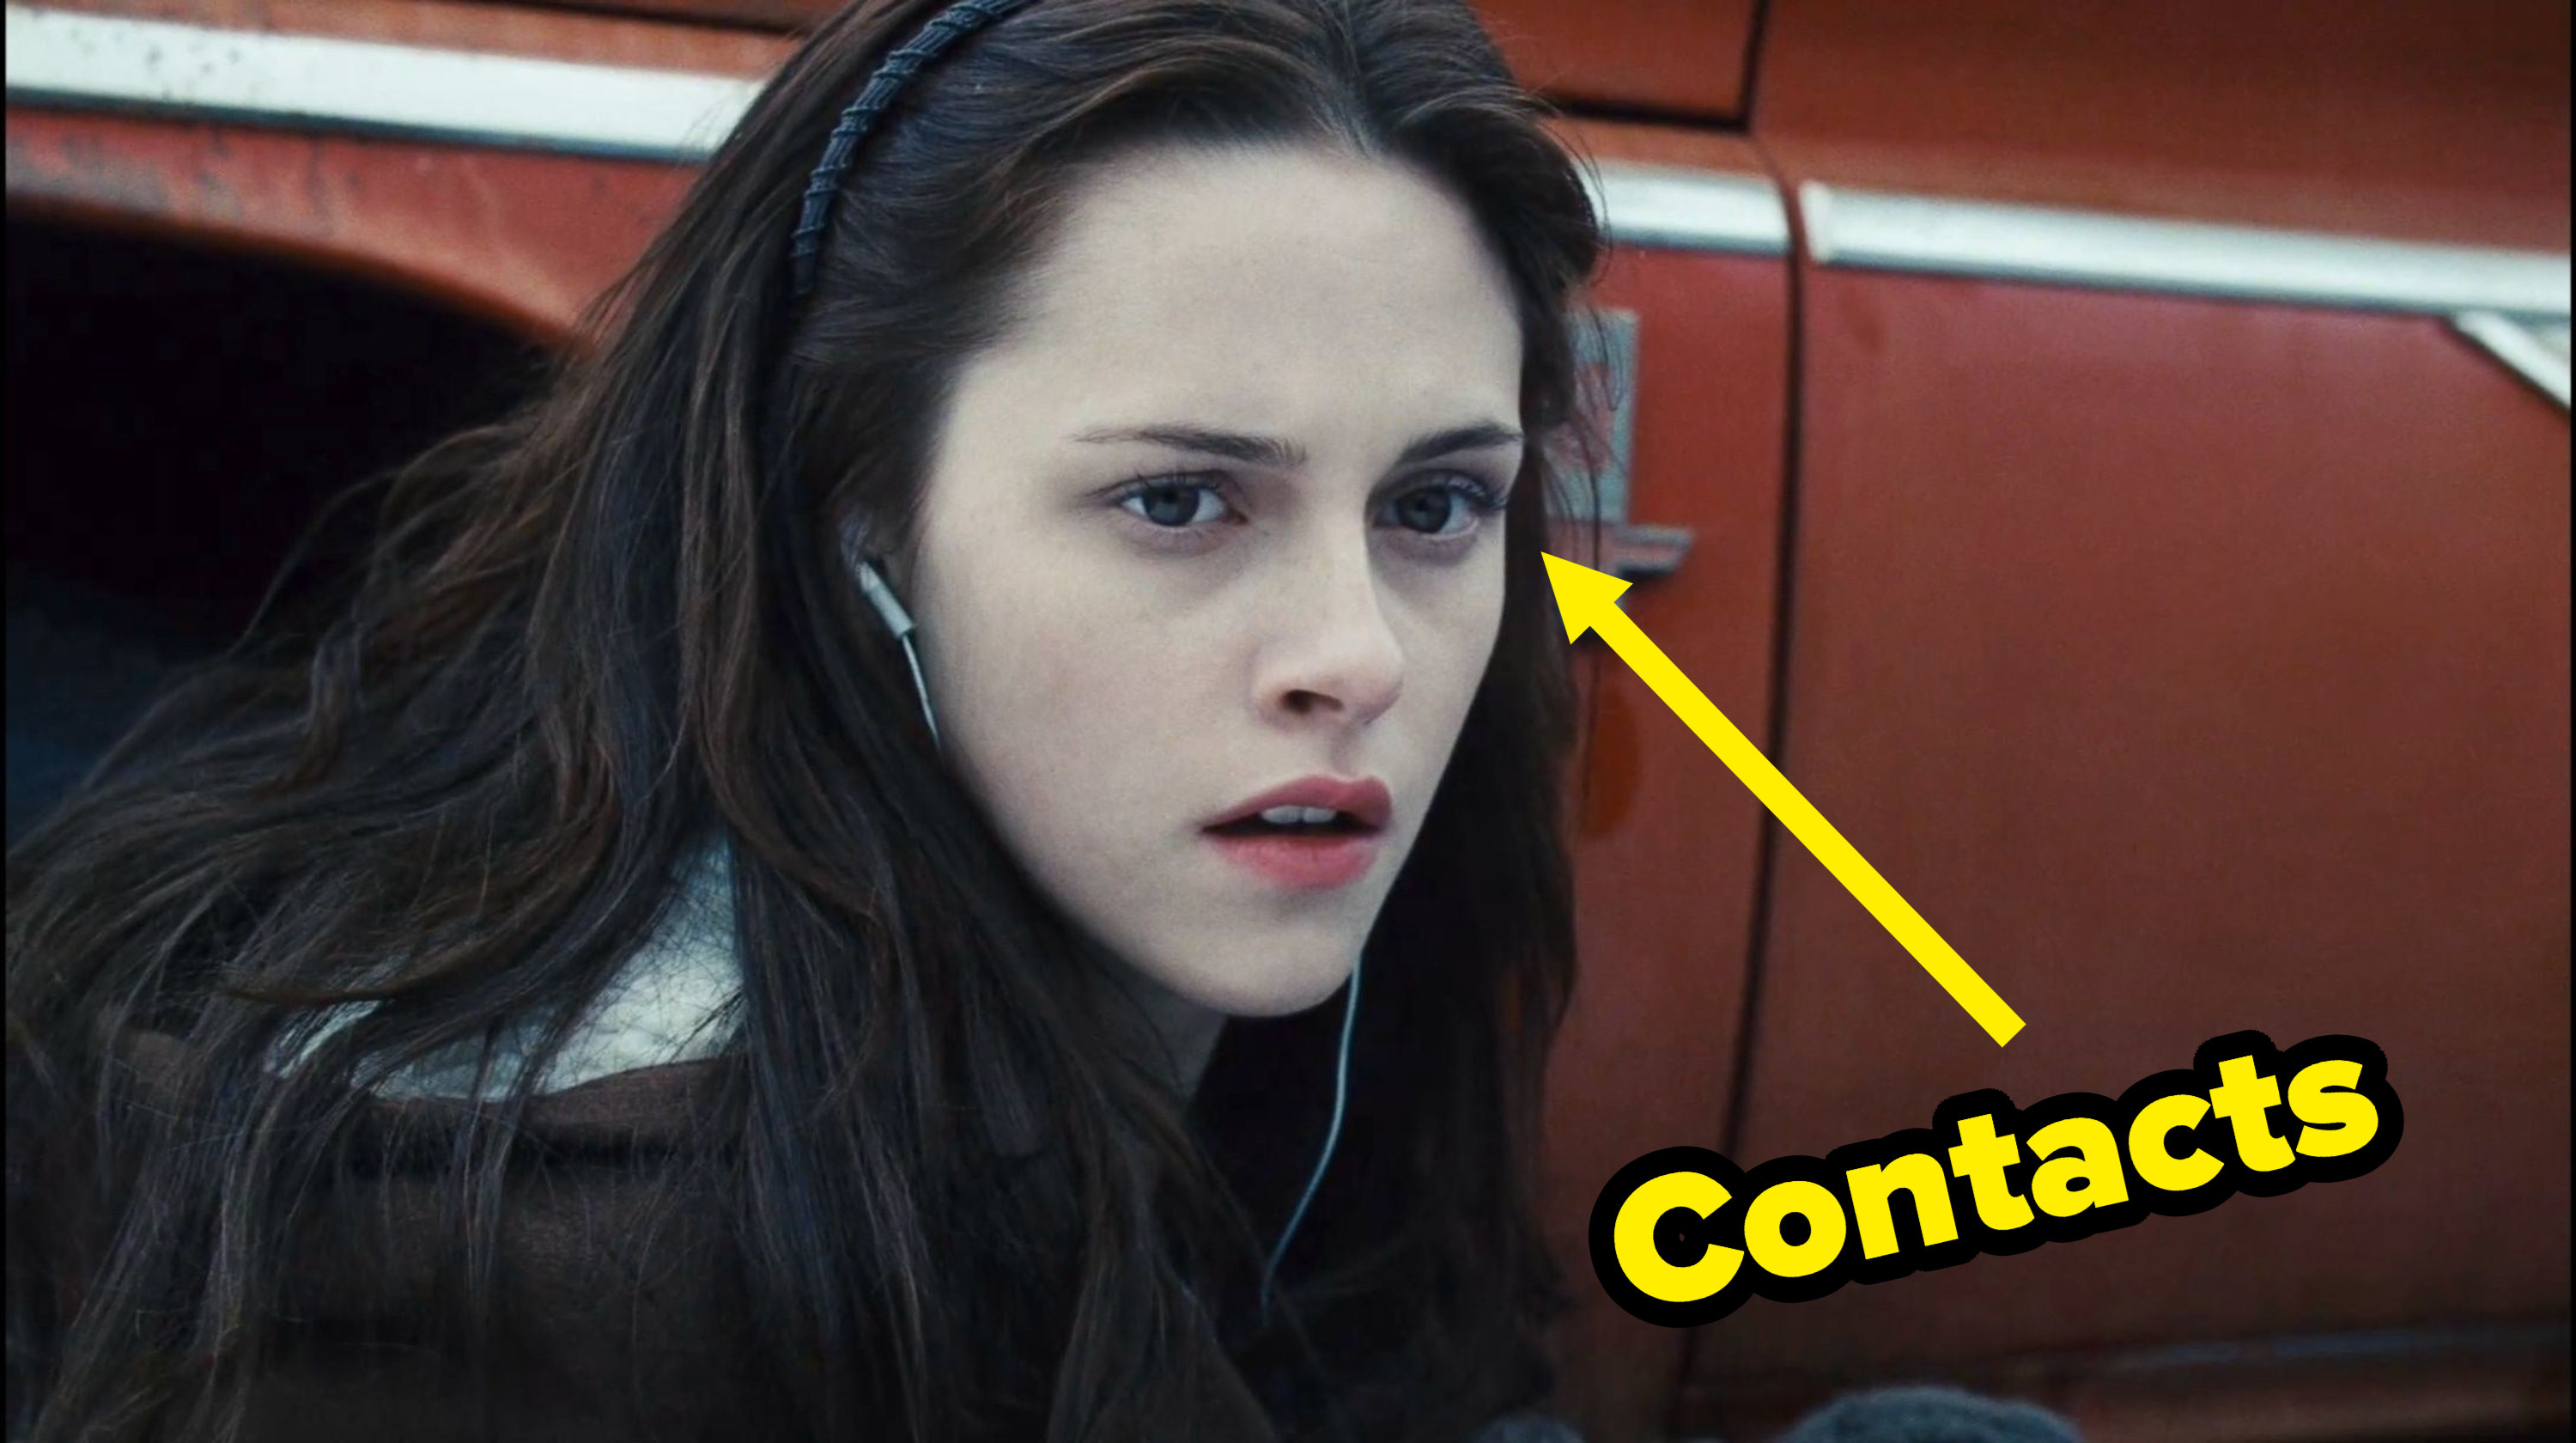 Kristen Stewart in Twilight with brown colored contacts